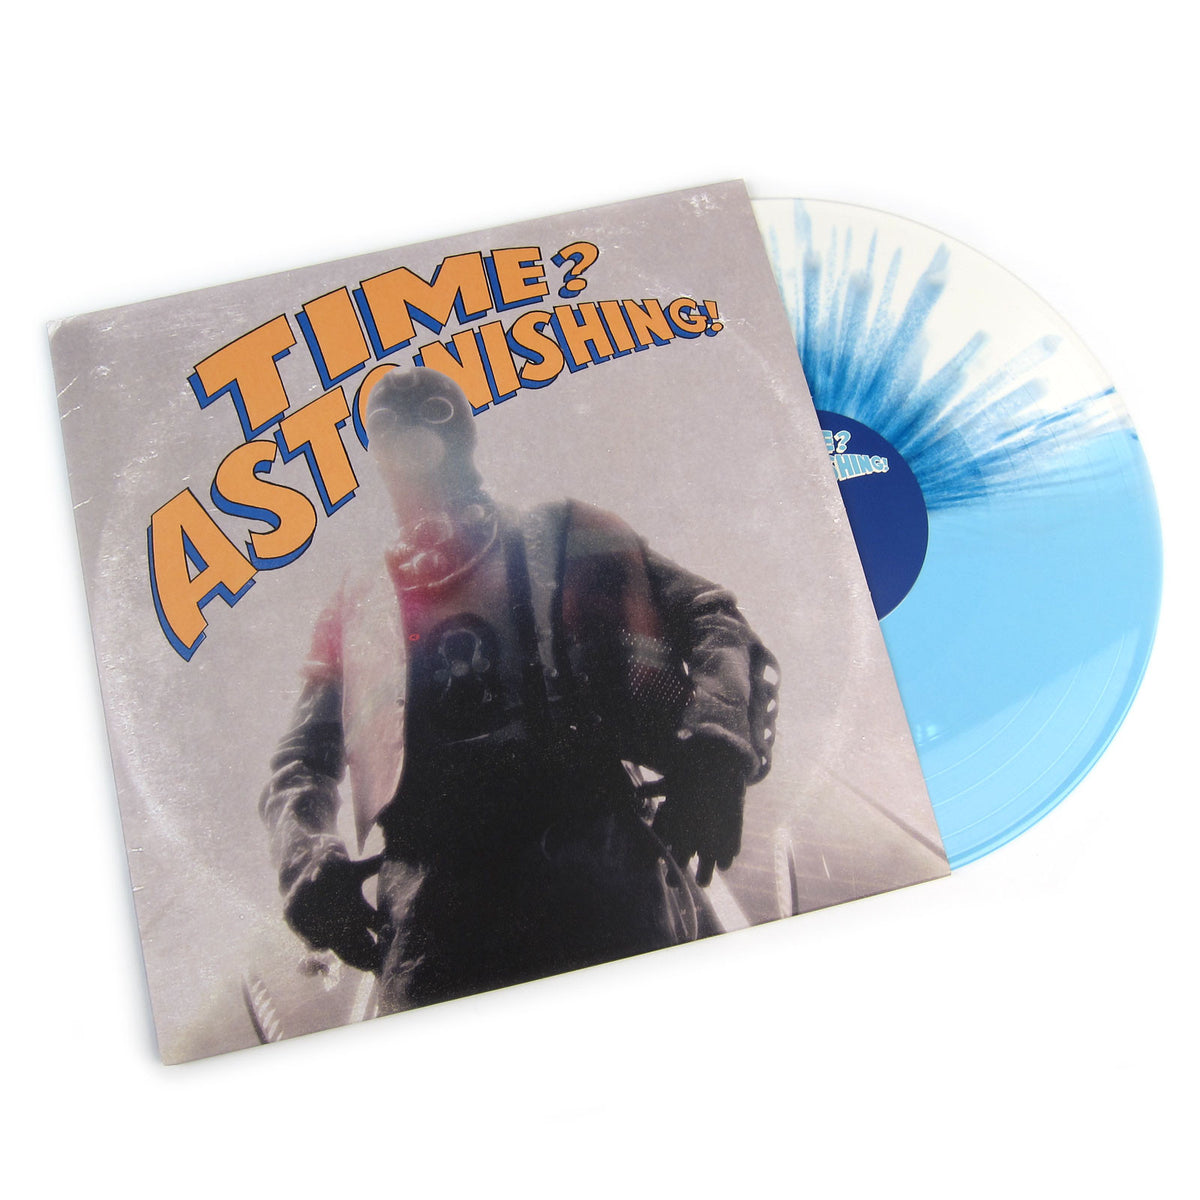 L'Orange & Kool Keith: Time? Astonishing! (Colored Vinyl) Vinyl LP